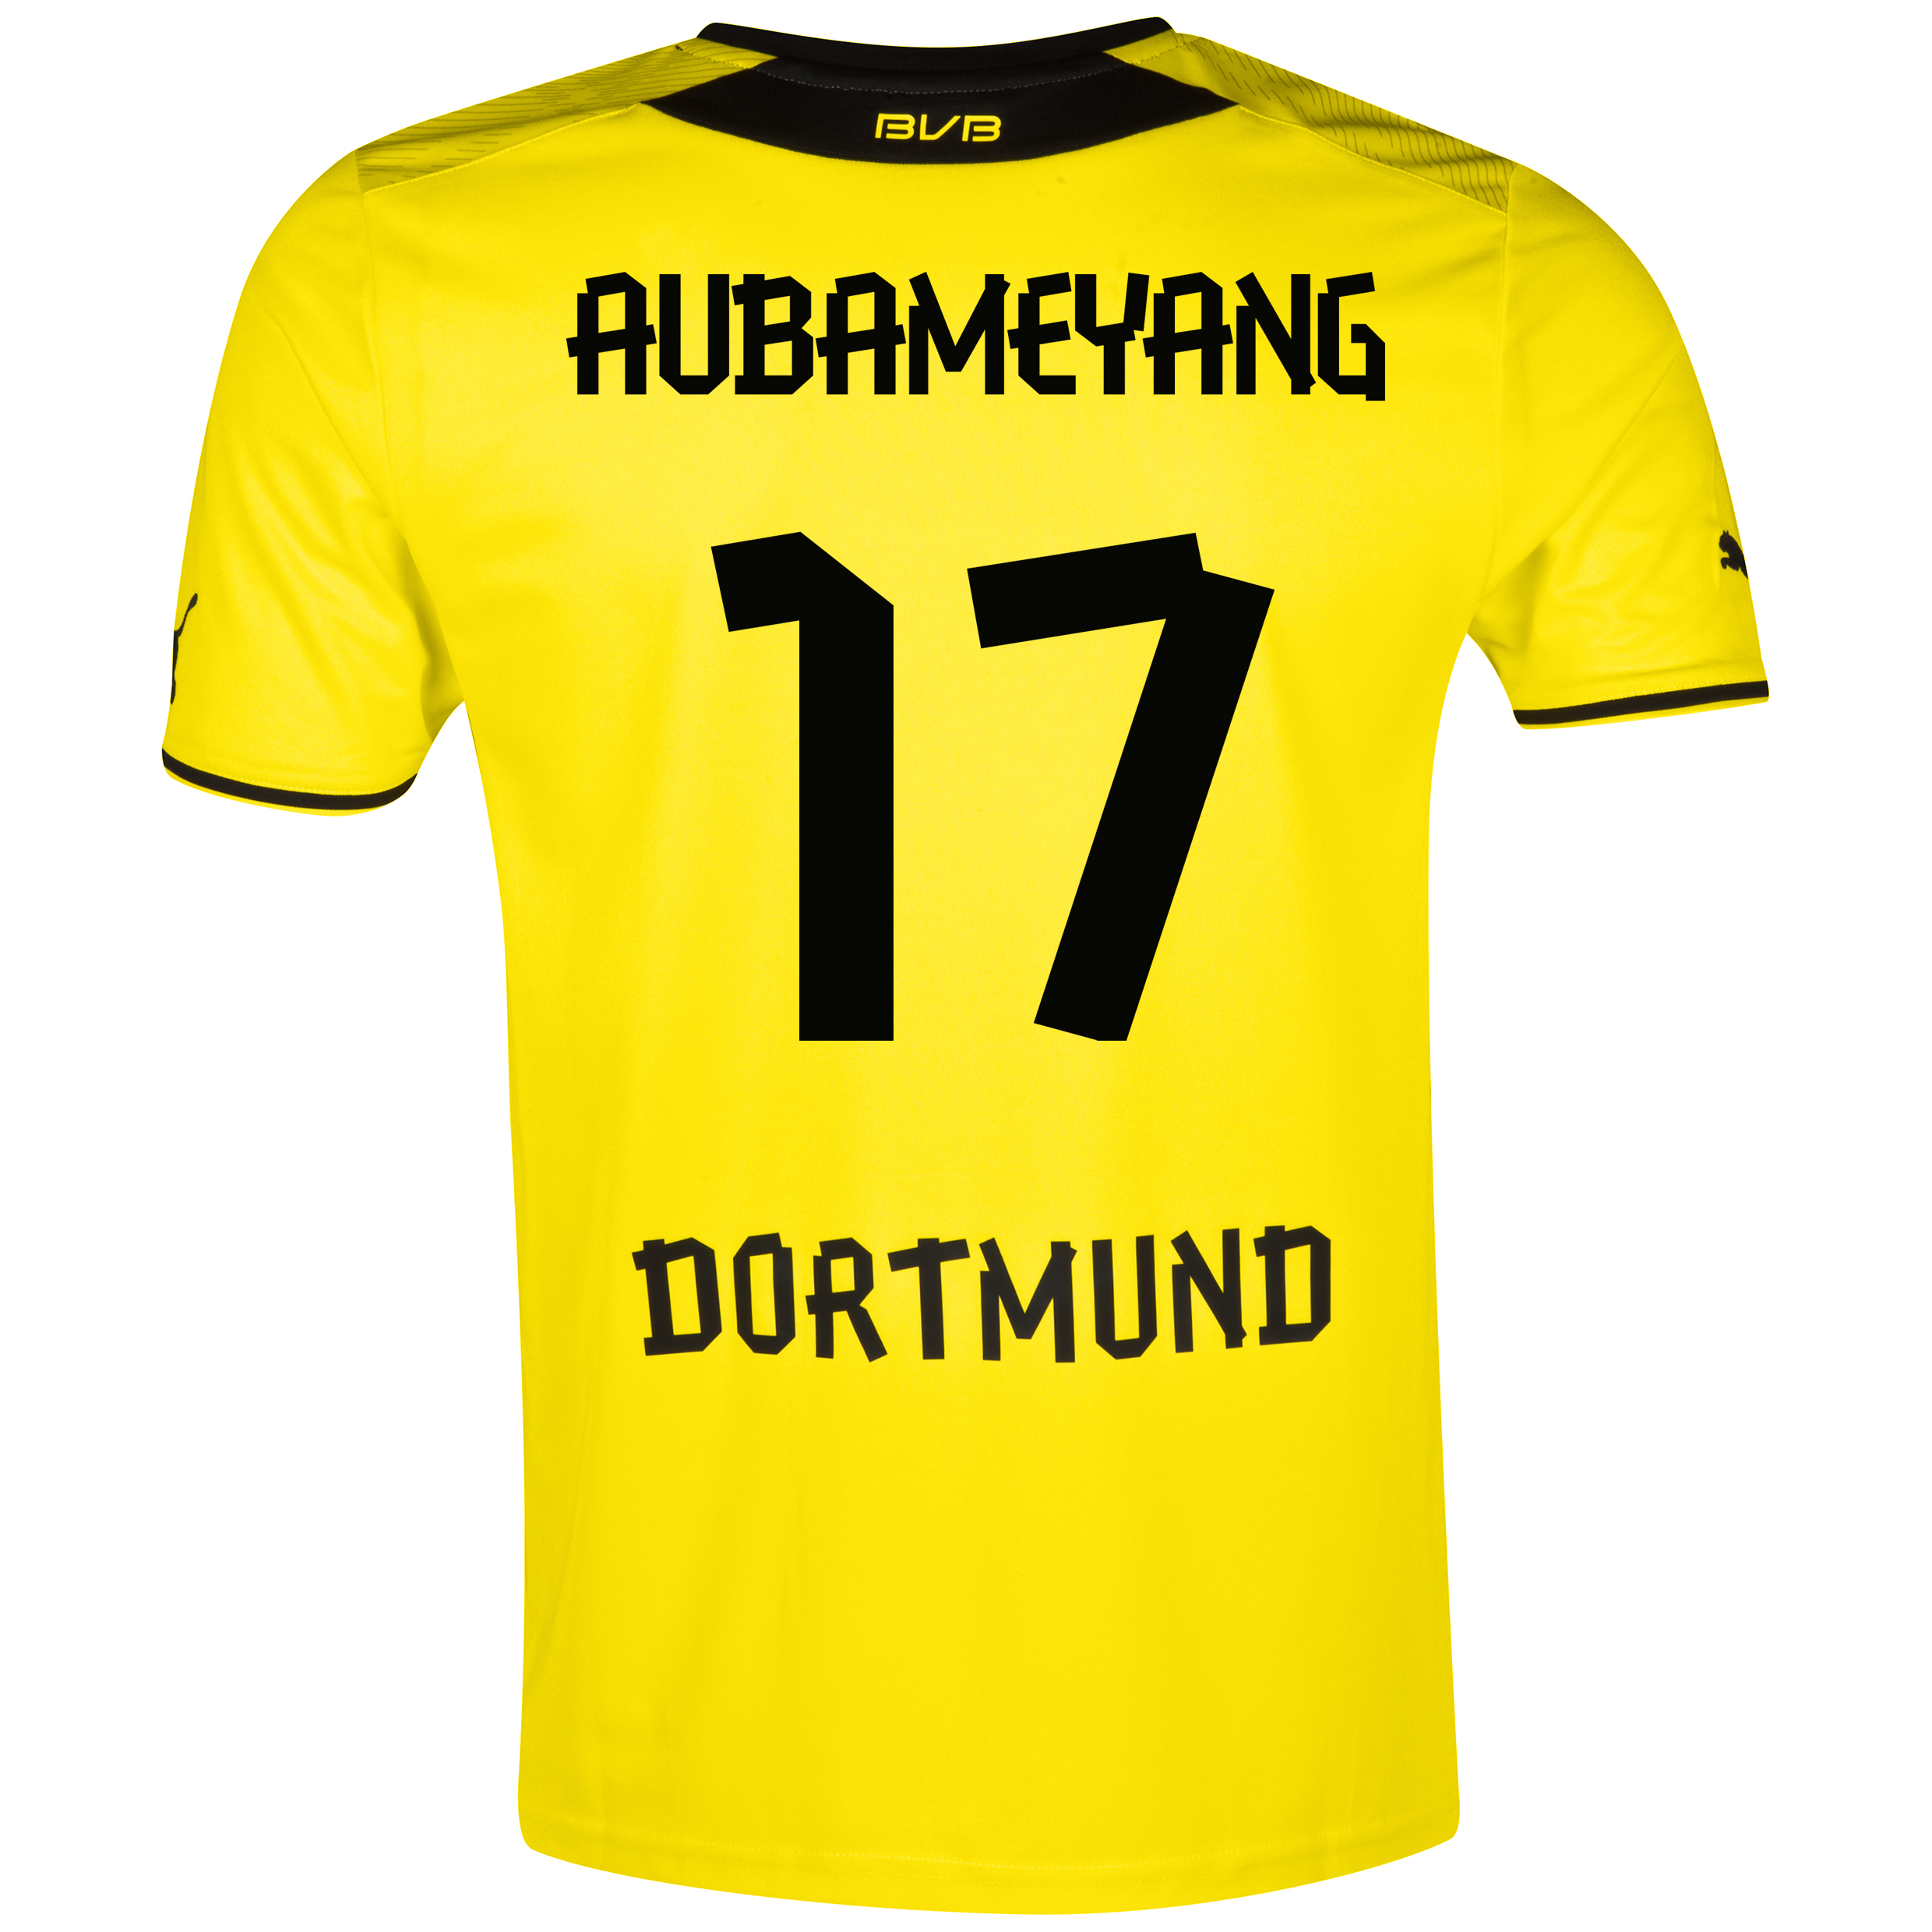 BVB Home Shirt 2013/14 with Aubameyang 17 printing